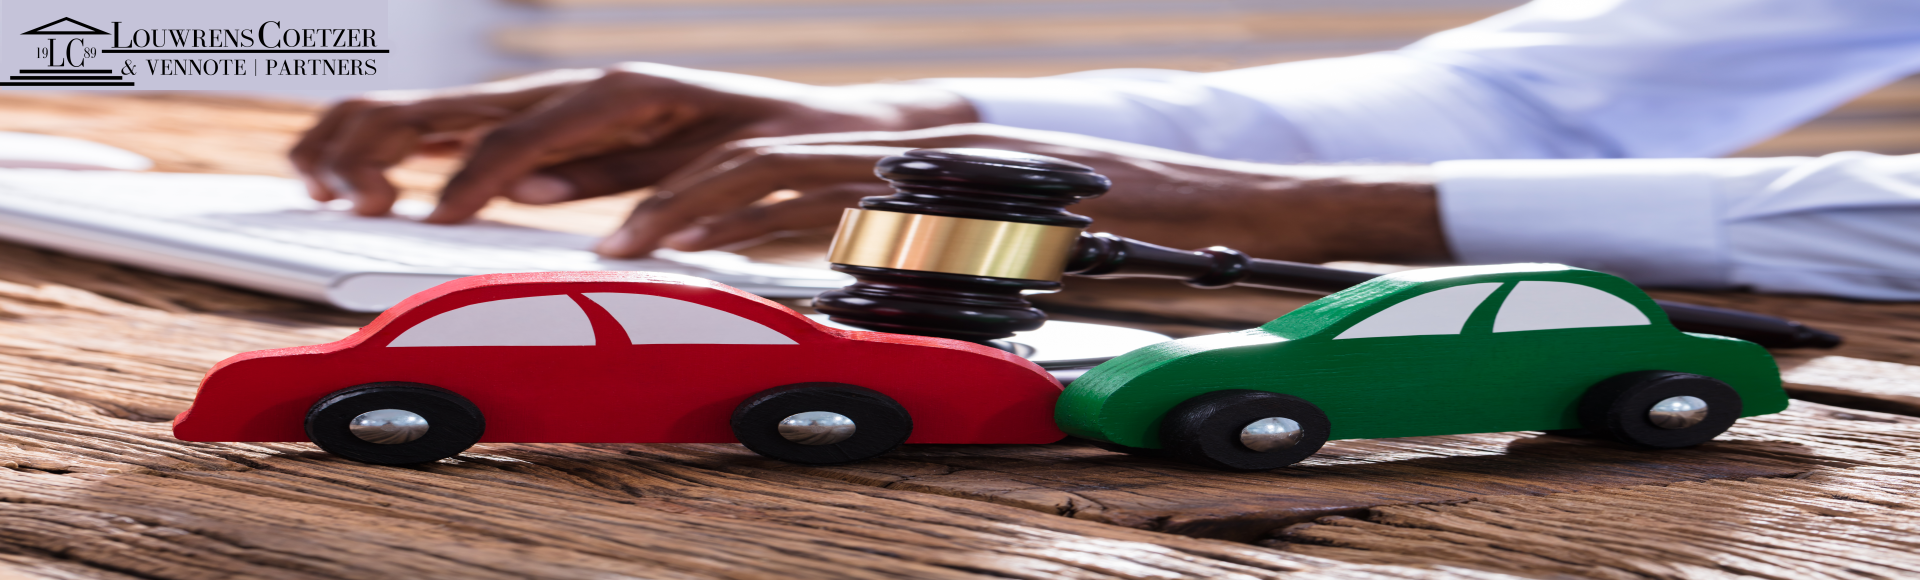 Louwrens Coetzer – Road Accident & Personal Injury Attorneys